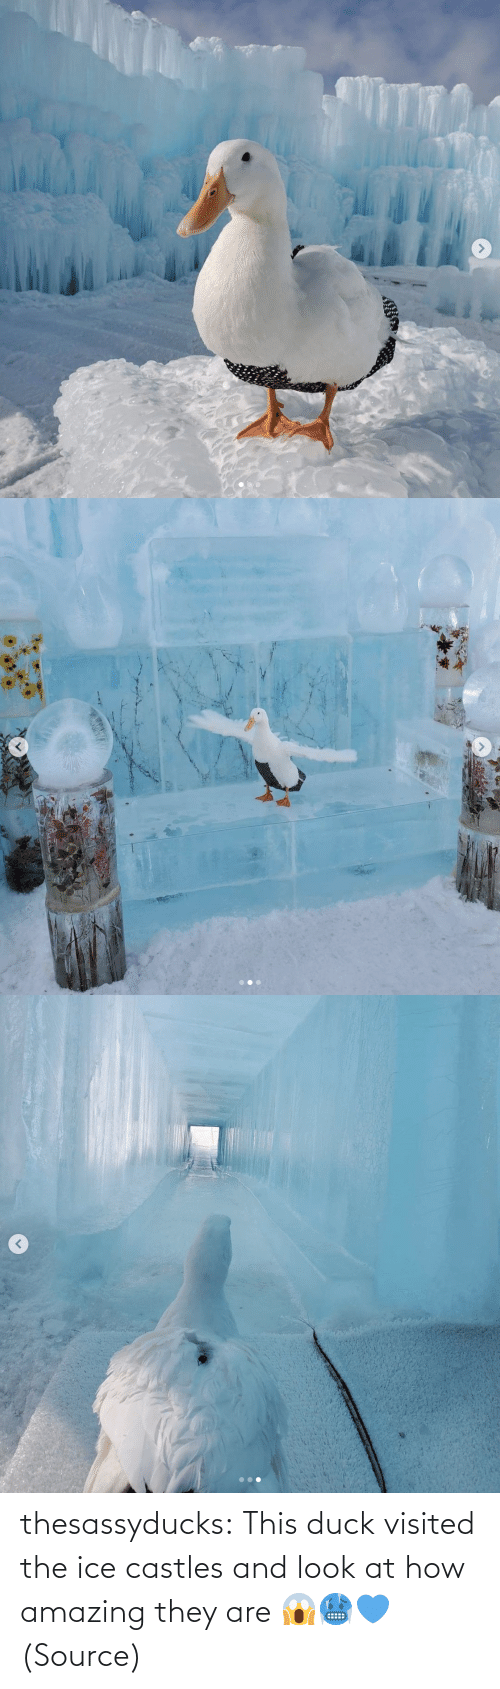 Duck: thesassyducks: This duck visited the ice castles and look at how amazing they are 😱🥶💙 (Source)